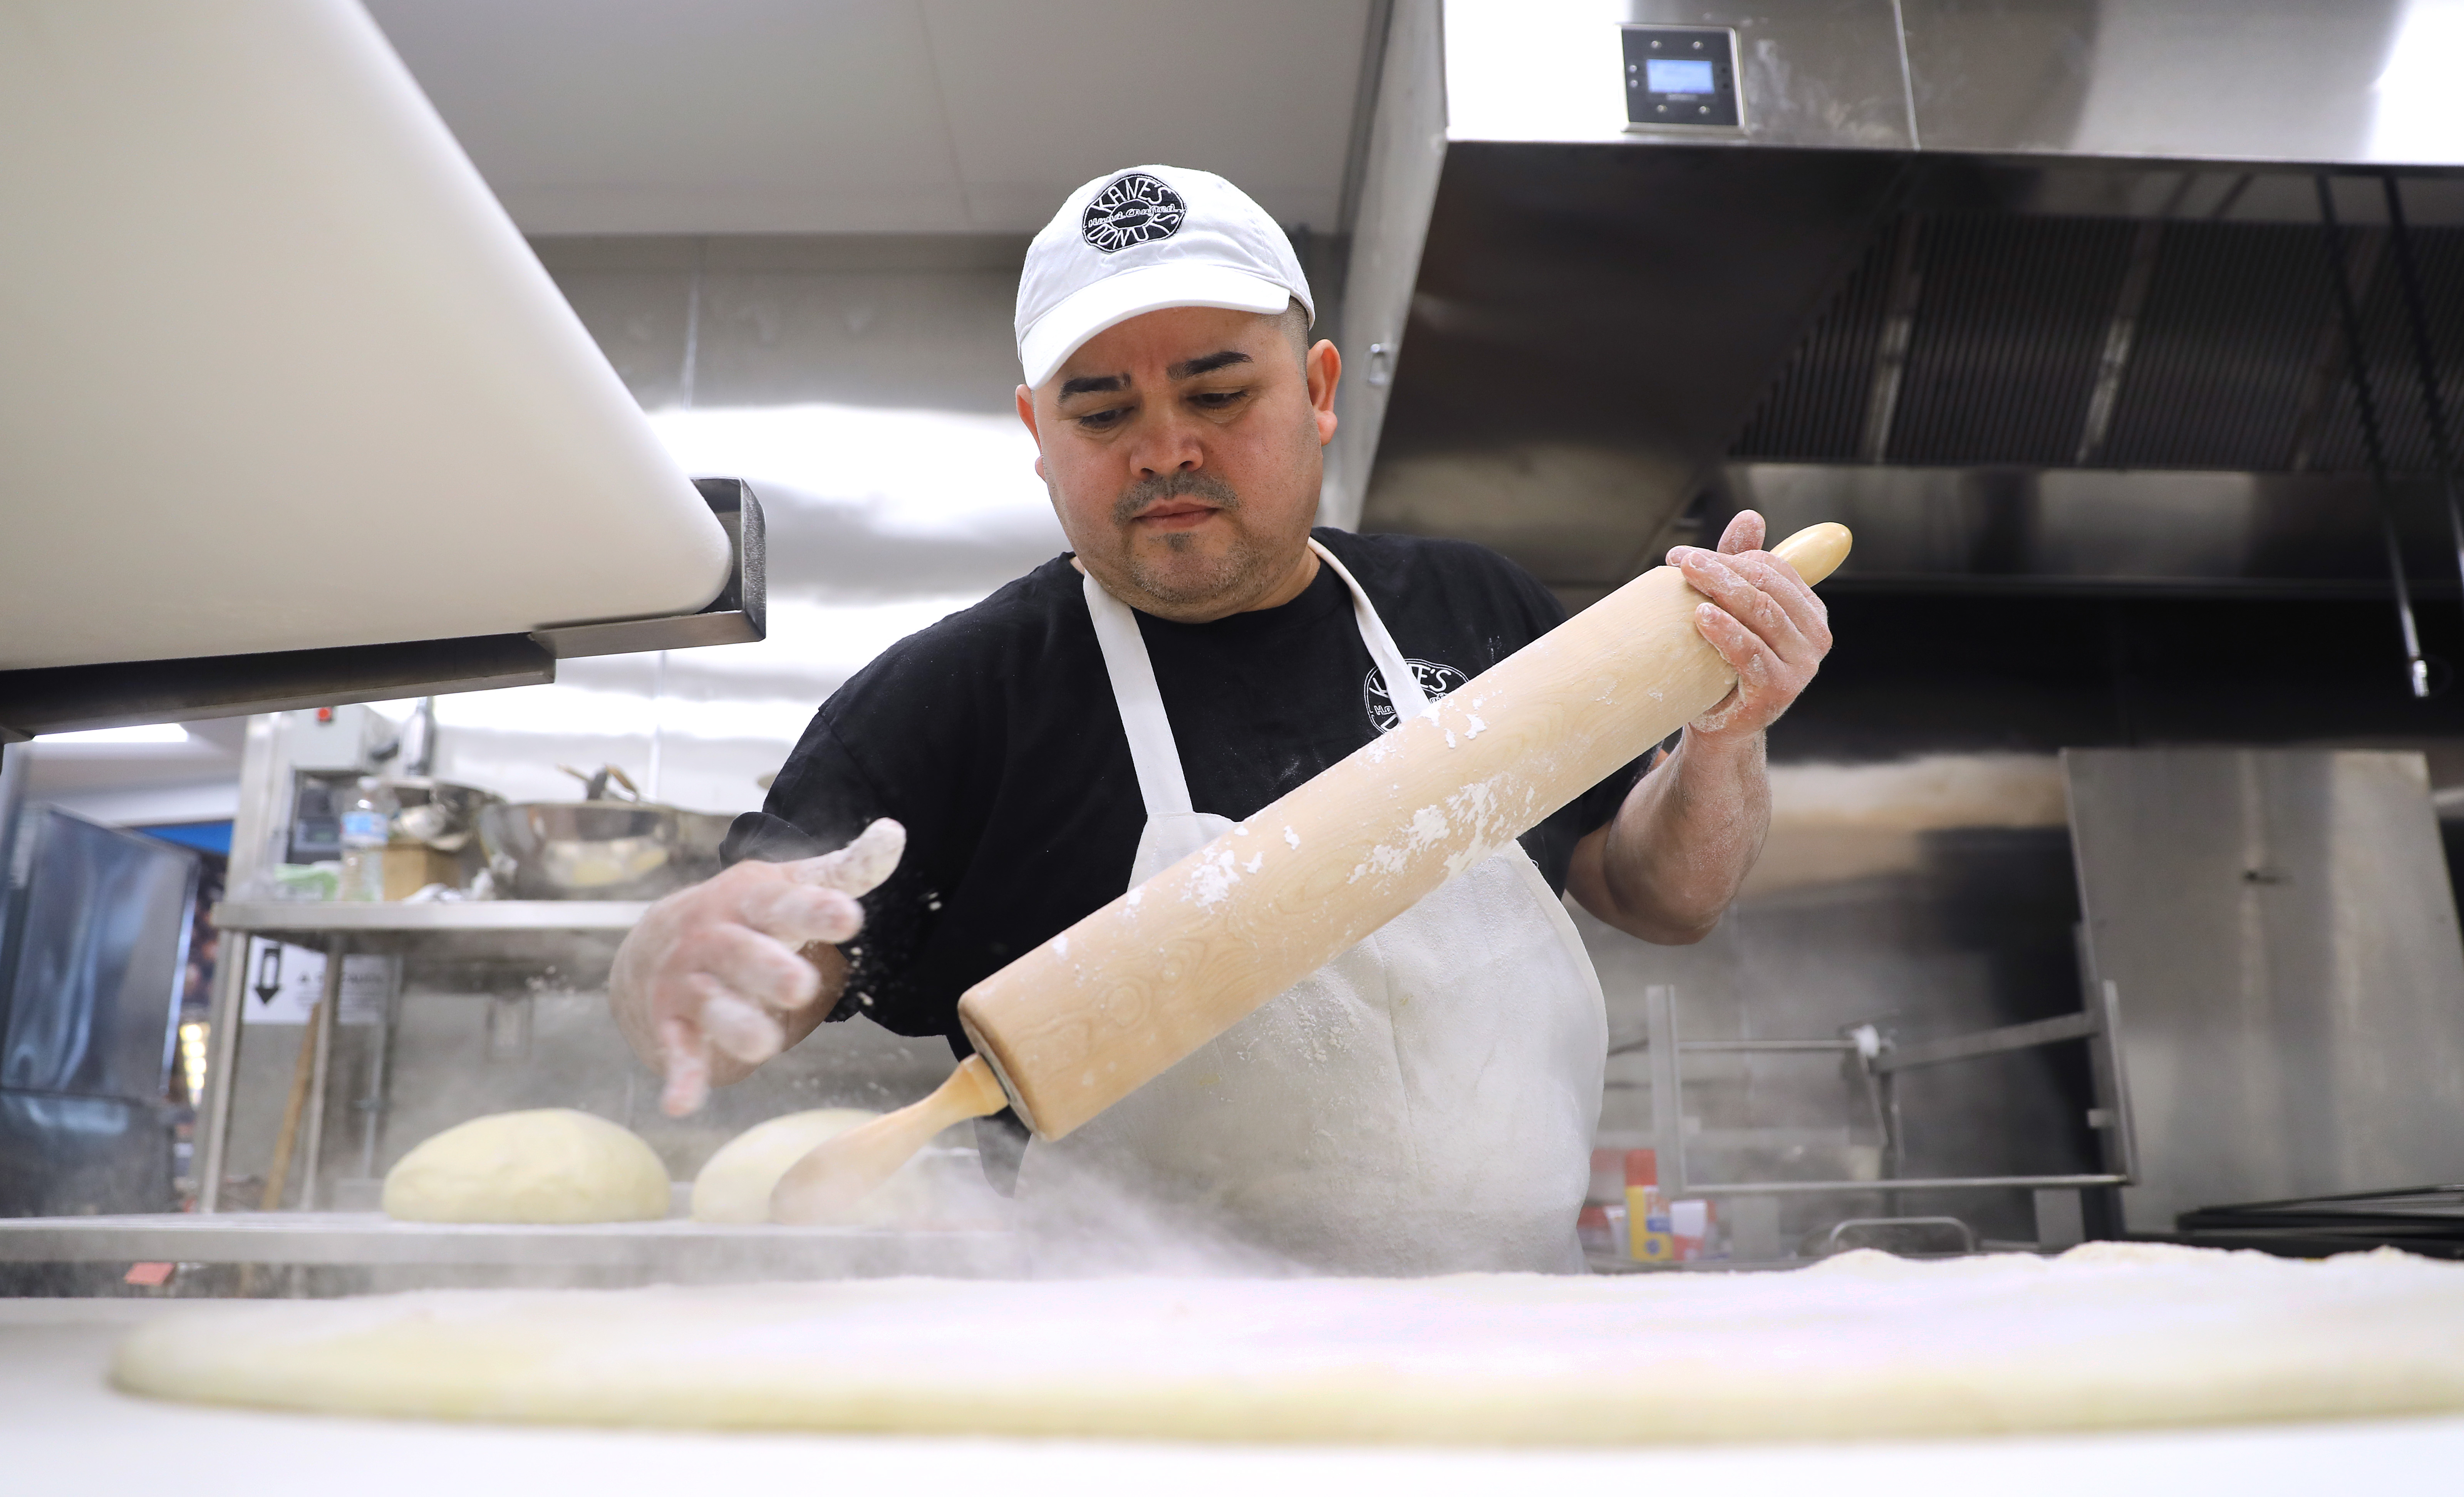 Kane S Starts Making Doughnuts Off Route 1 Next To The